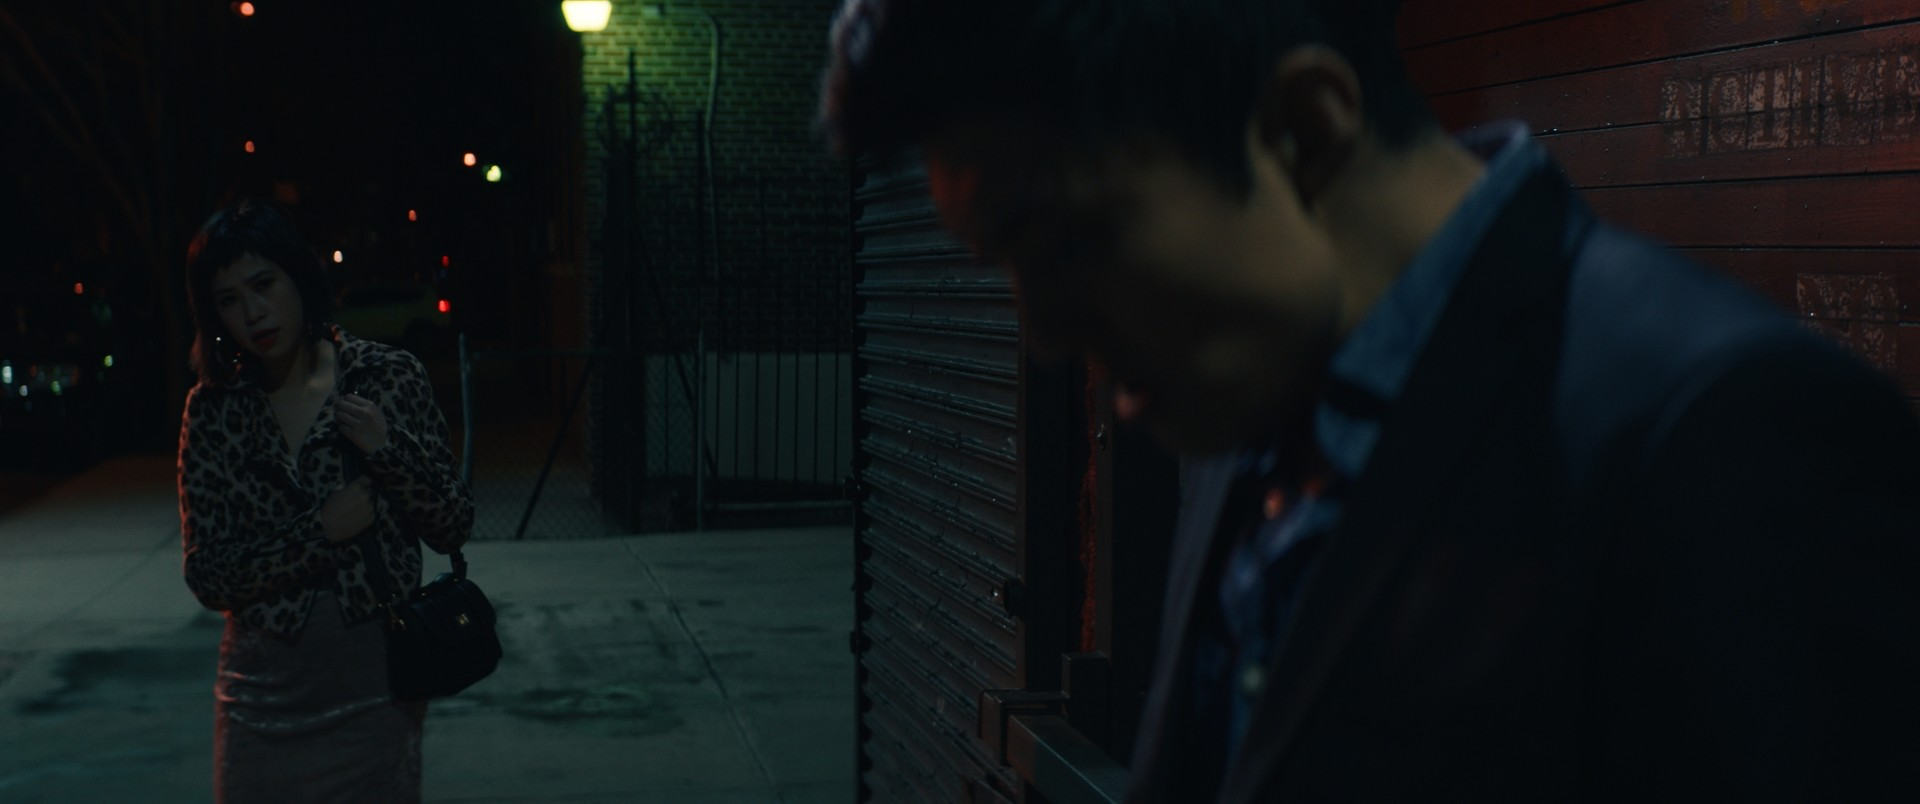 'Rootless' is the latest short film from director Zhojian Cong, and takes a look at the dark underground world of crime, but has an even darker message.